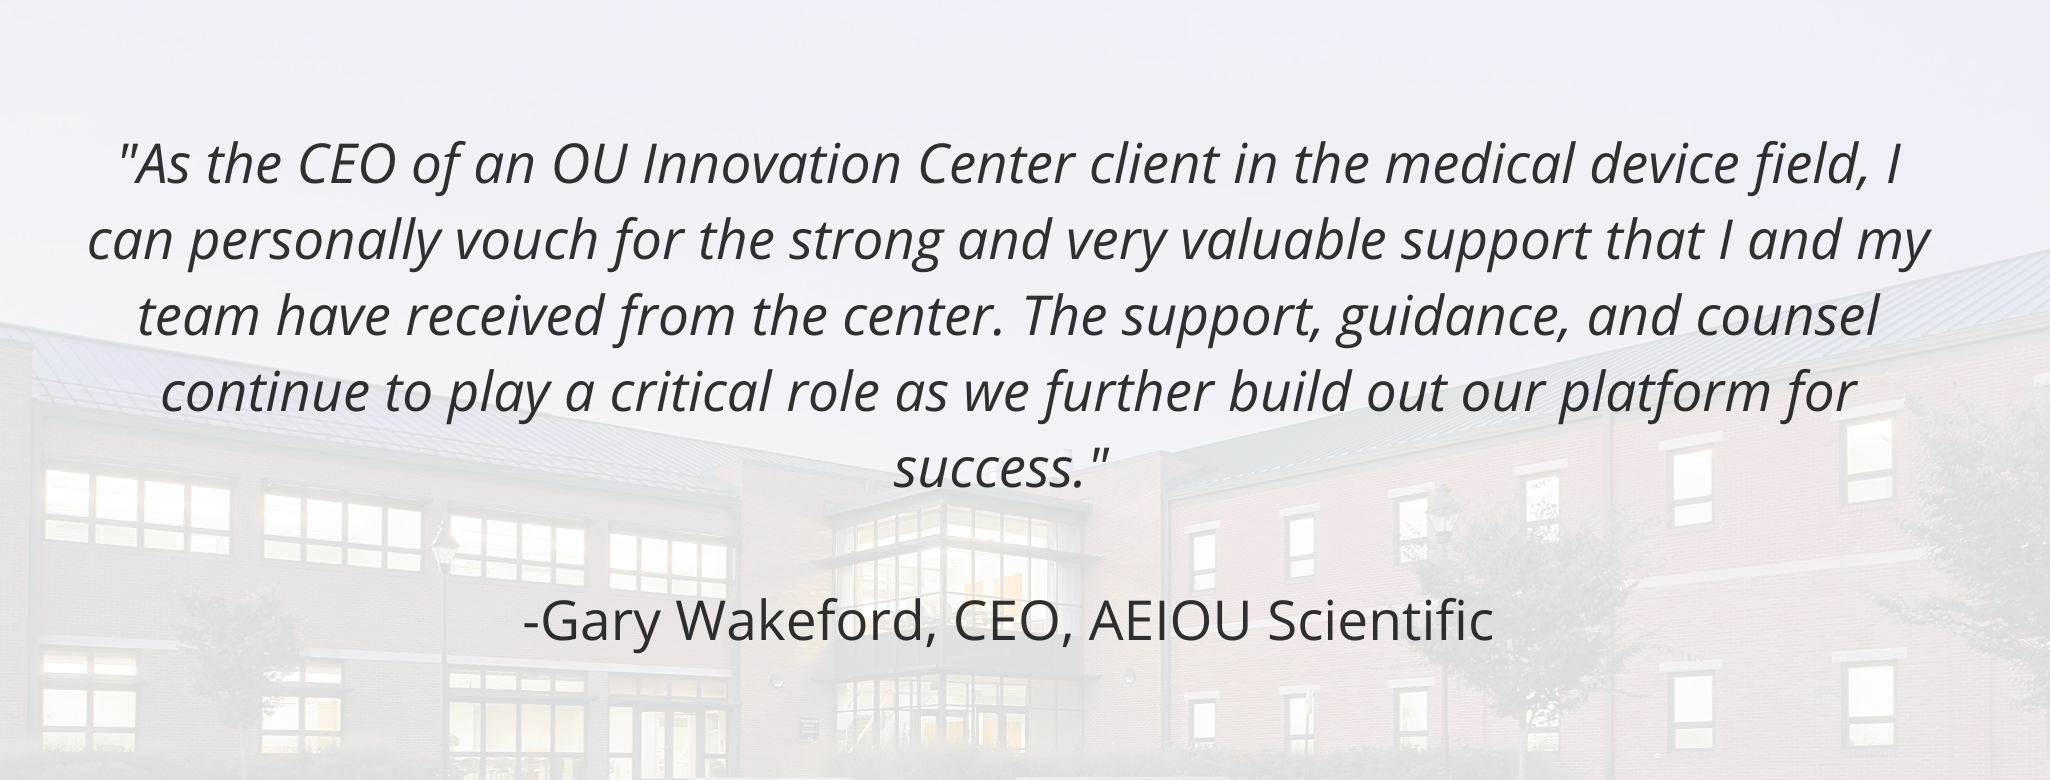 """""""As the CEO of an OU Innovation Center client in the medical device field, I can personally vouch for the strong and very valuable support that I and my team have received from the center. The support, guidance, and counsel continue to play a critical role as we further build out our platform for success.""""   -Gary Wakeford, CEO, AEIOU Scientific"""